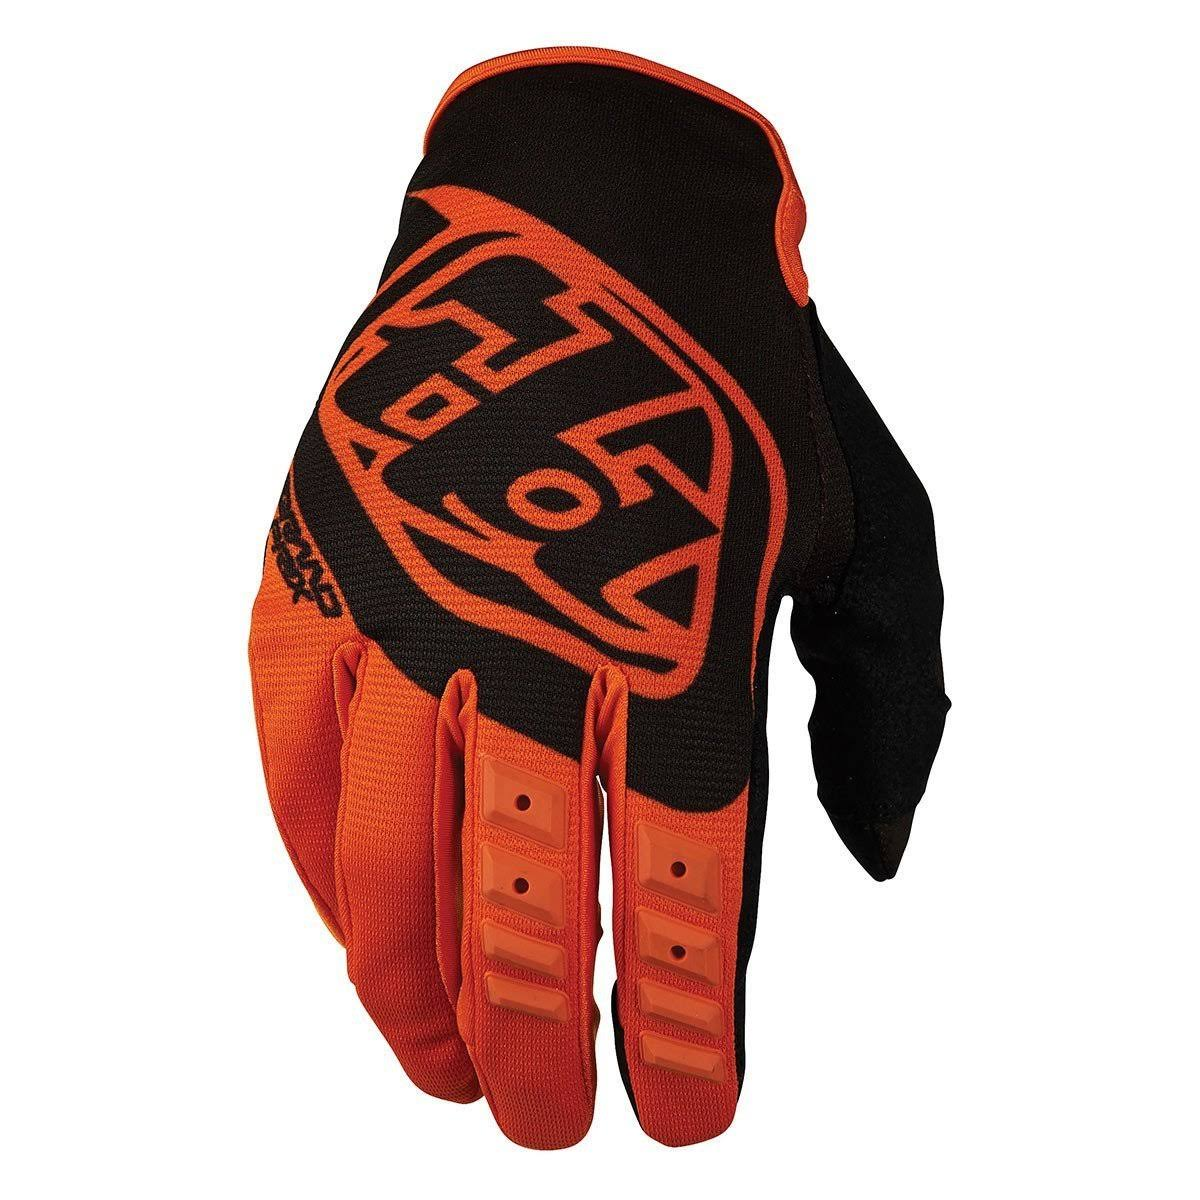 2017 Troy Lee Youth GP MX Motocross Gloves - Orange